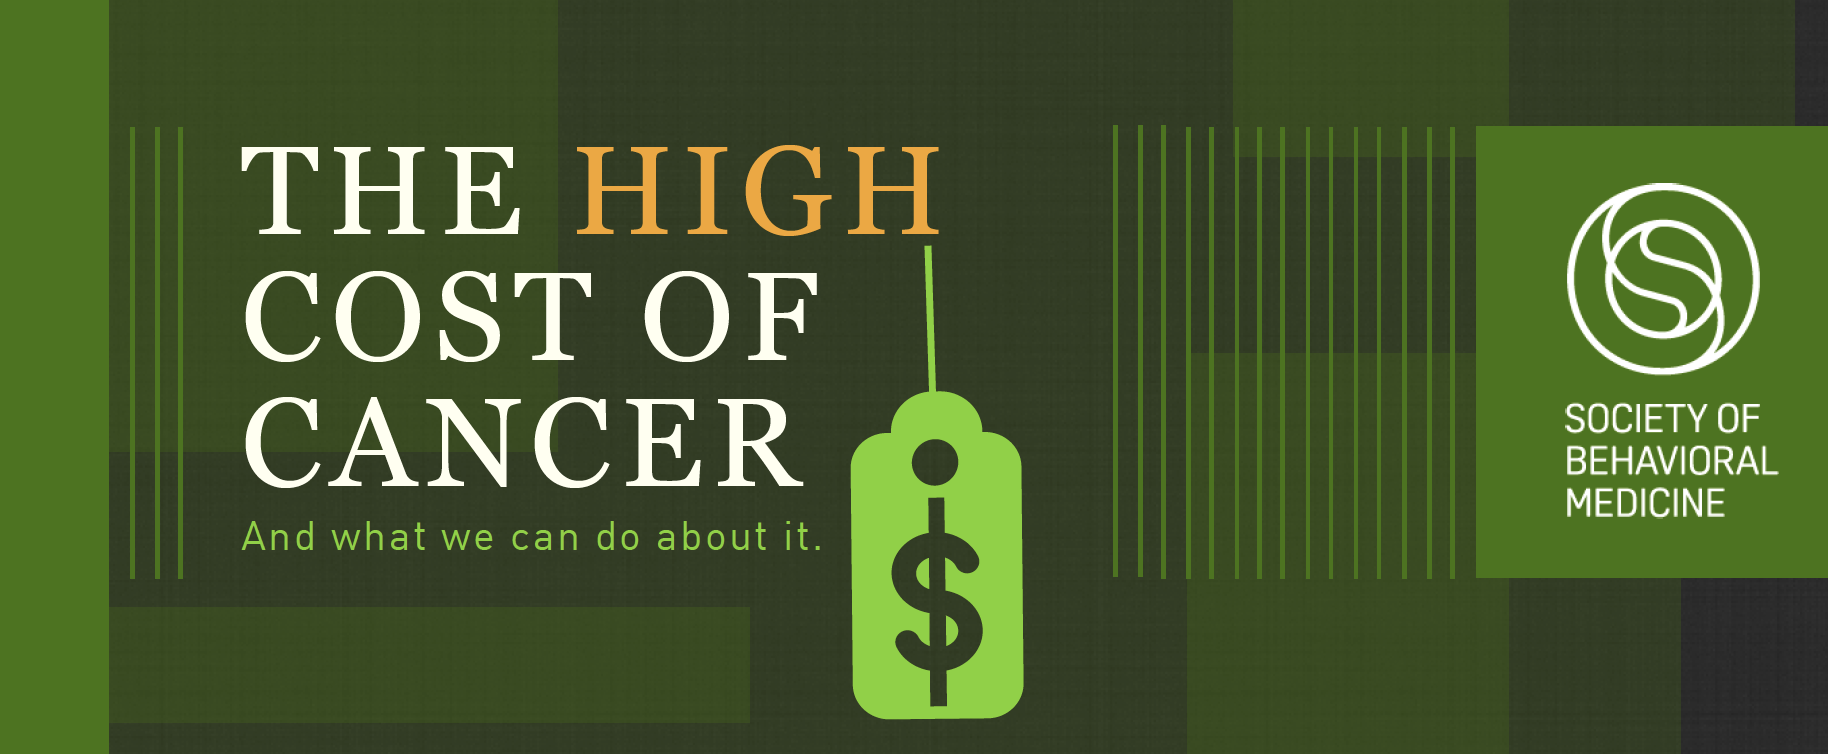 Cancer has impact on more than a patient's health